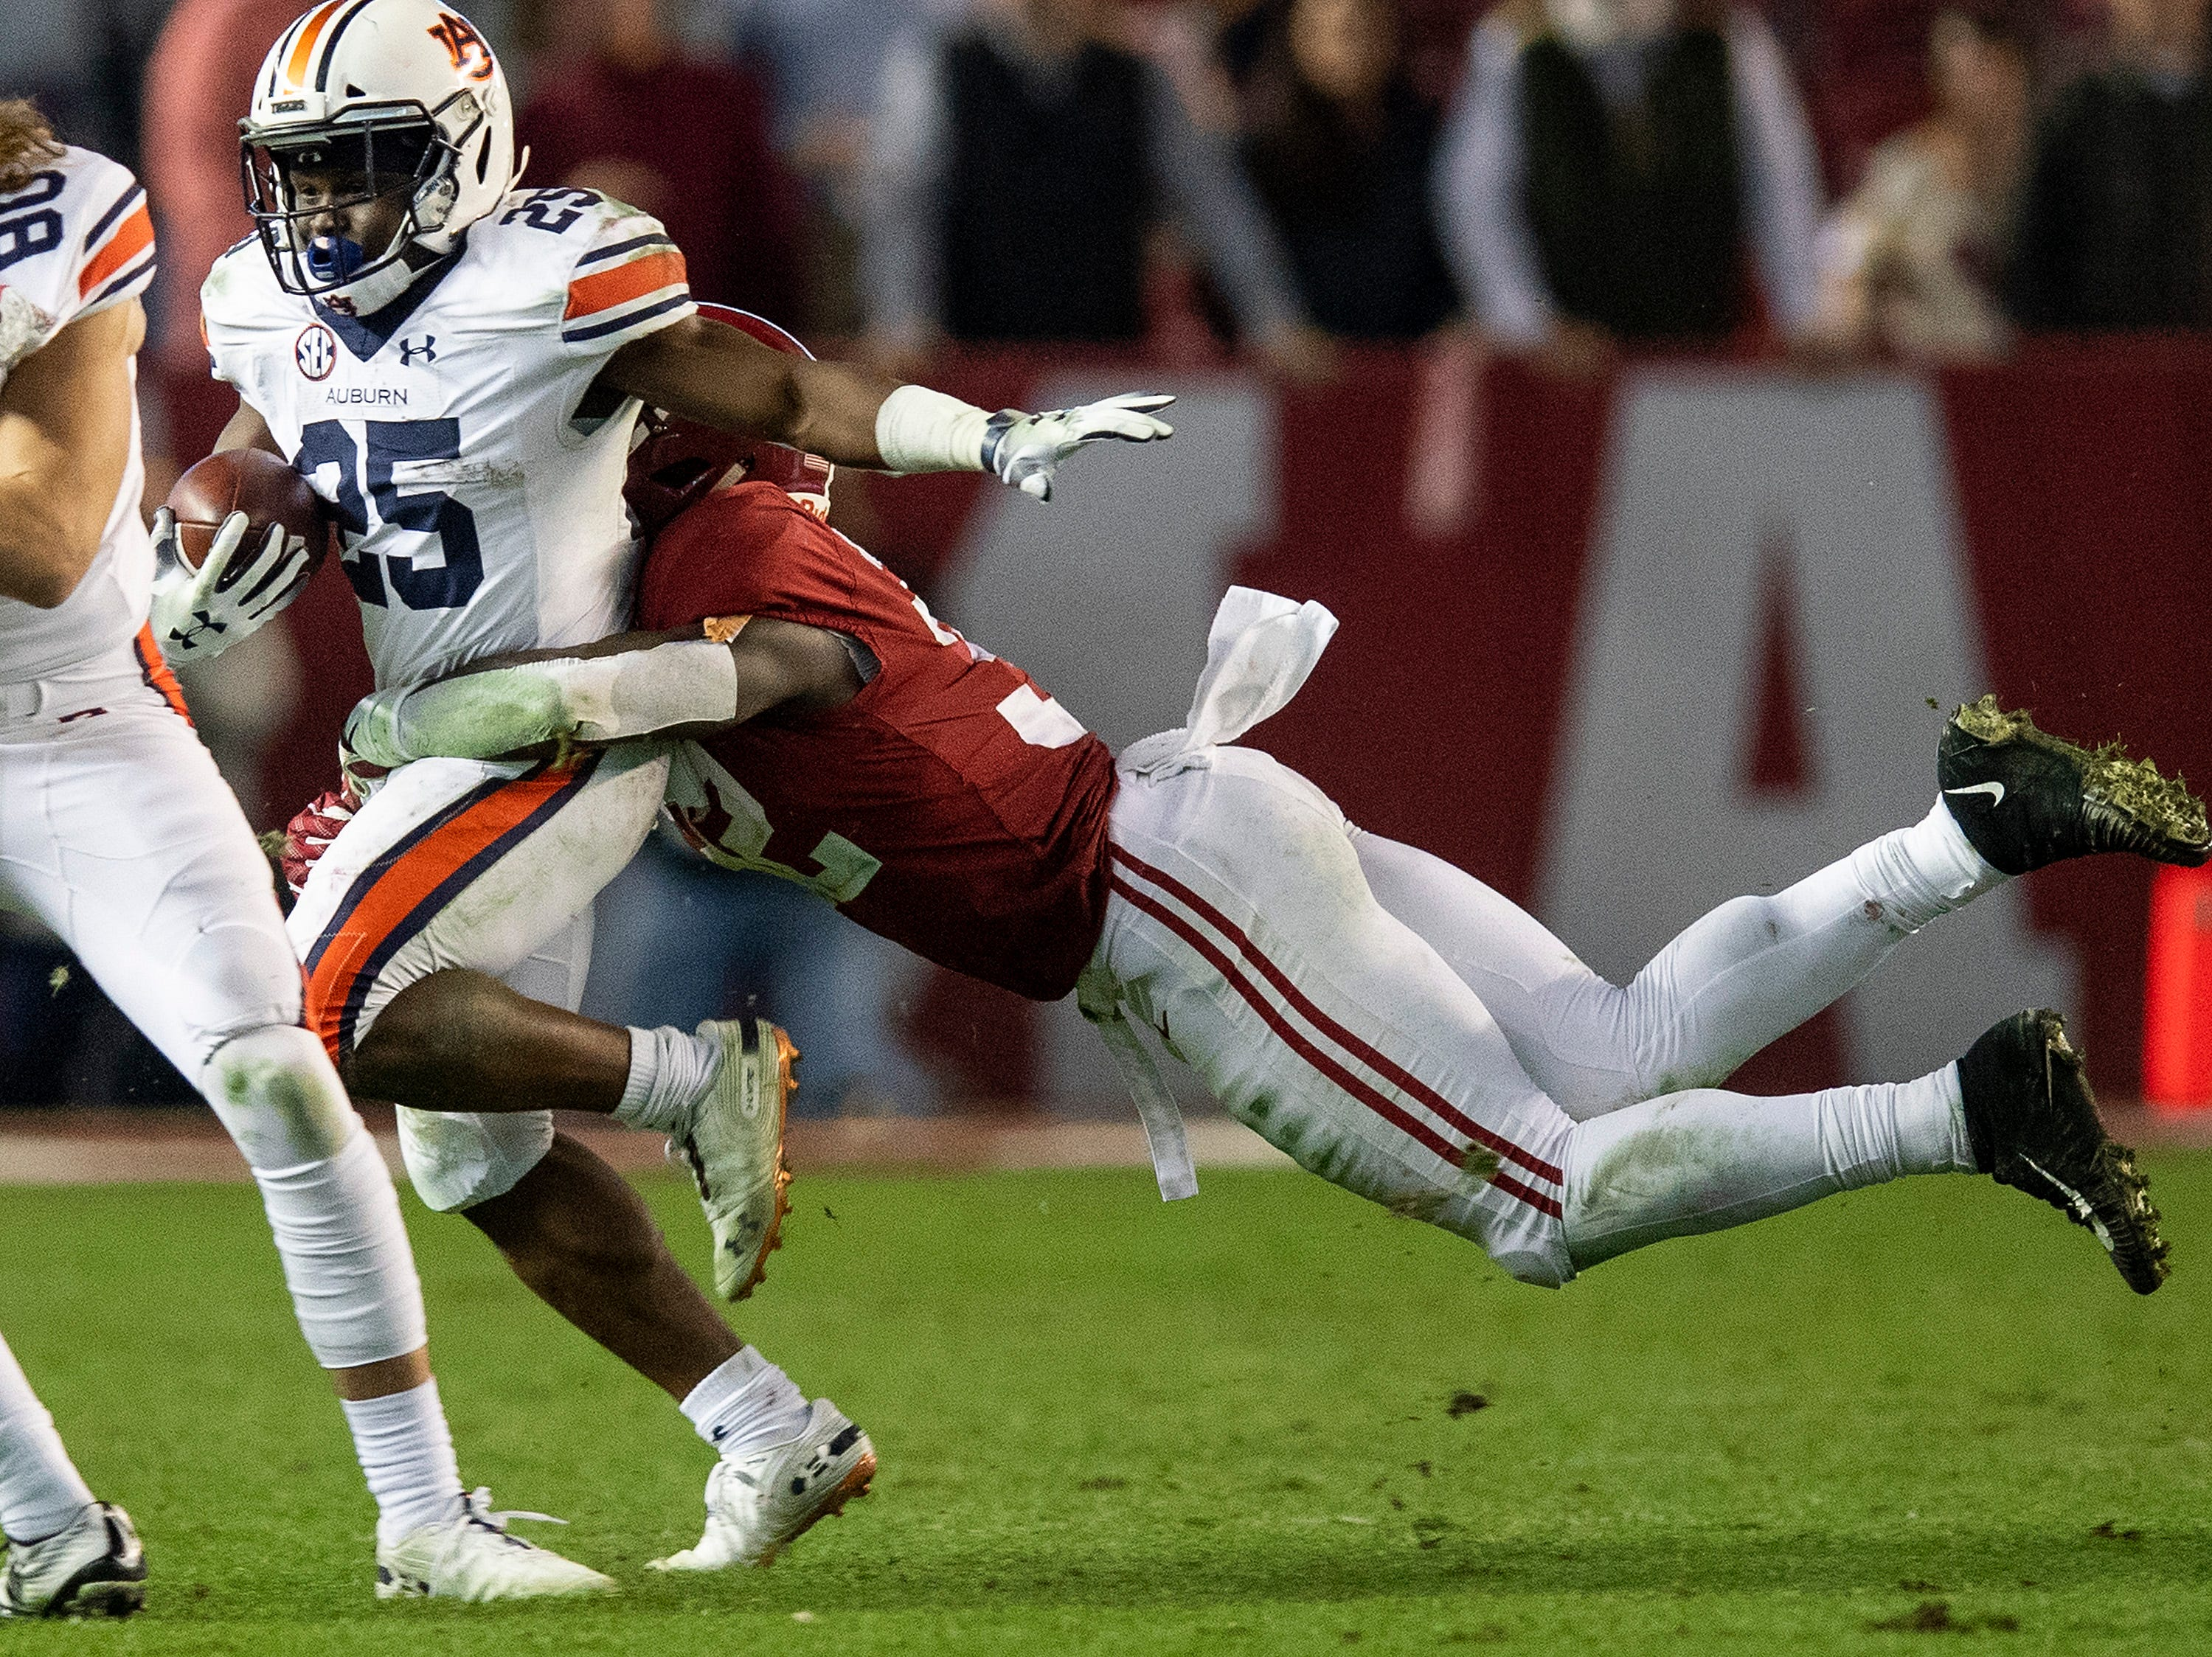 Alabama linebacker Dylan Moses (32) stops Auburn running back Shaun Shivers (25) in second half action during the Iron Bowl at Bryant-Denny Stadium in Tuscaloosa, Ala., on Saturday November 24, 2018.